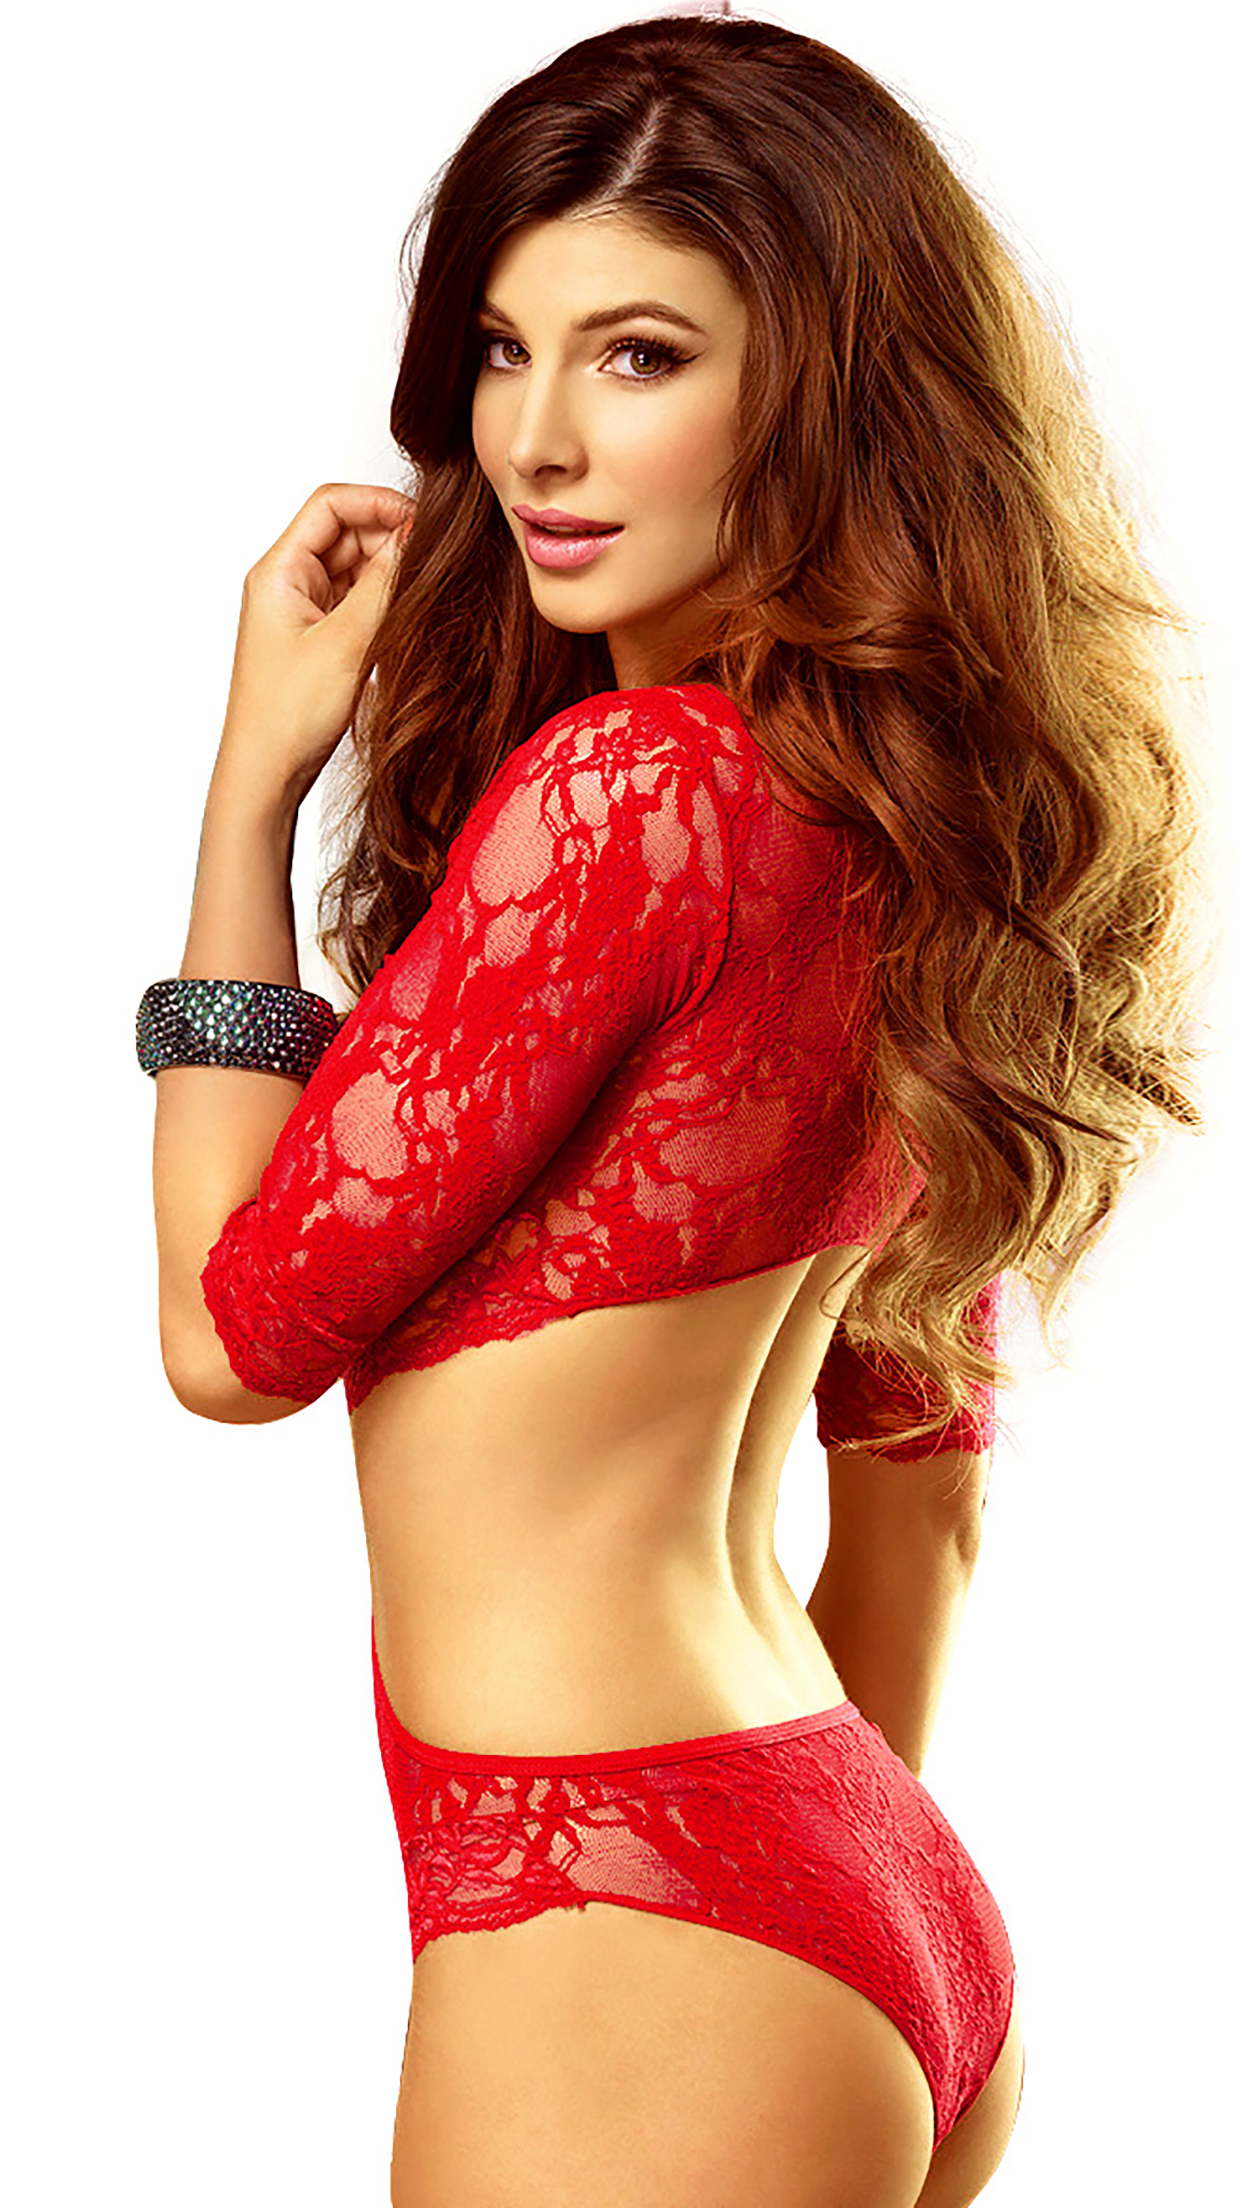 Mumbai Cheap Escorts Are Available On Best Price